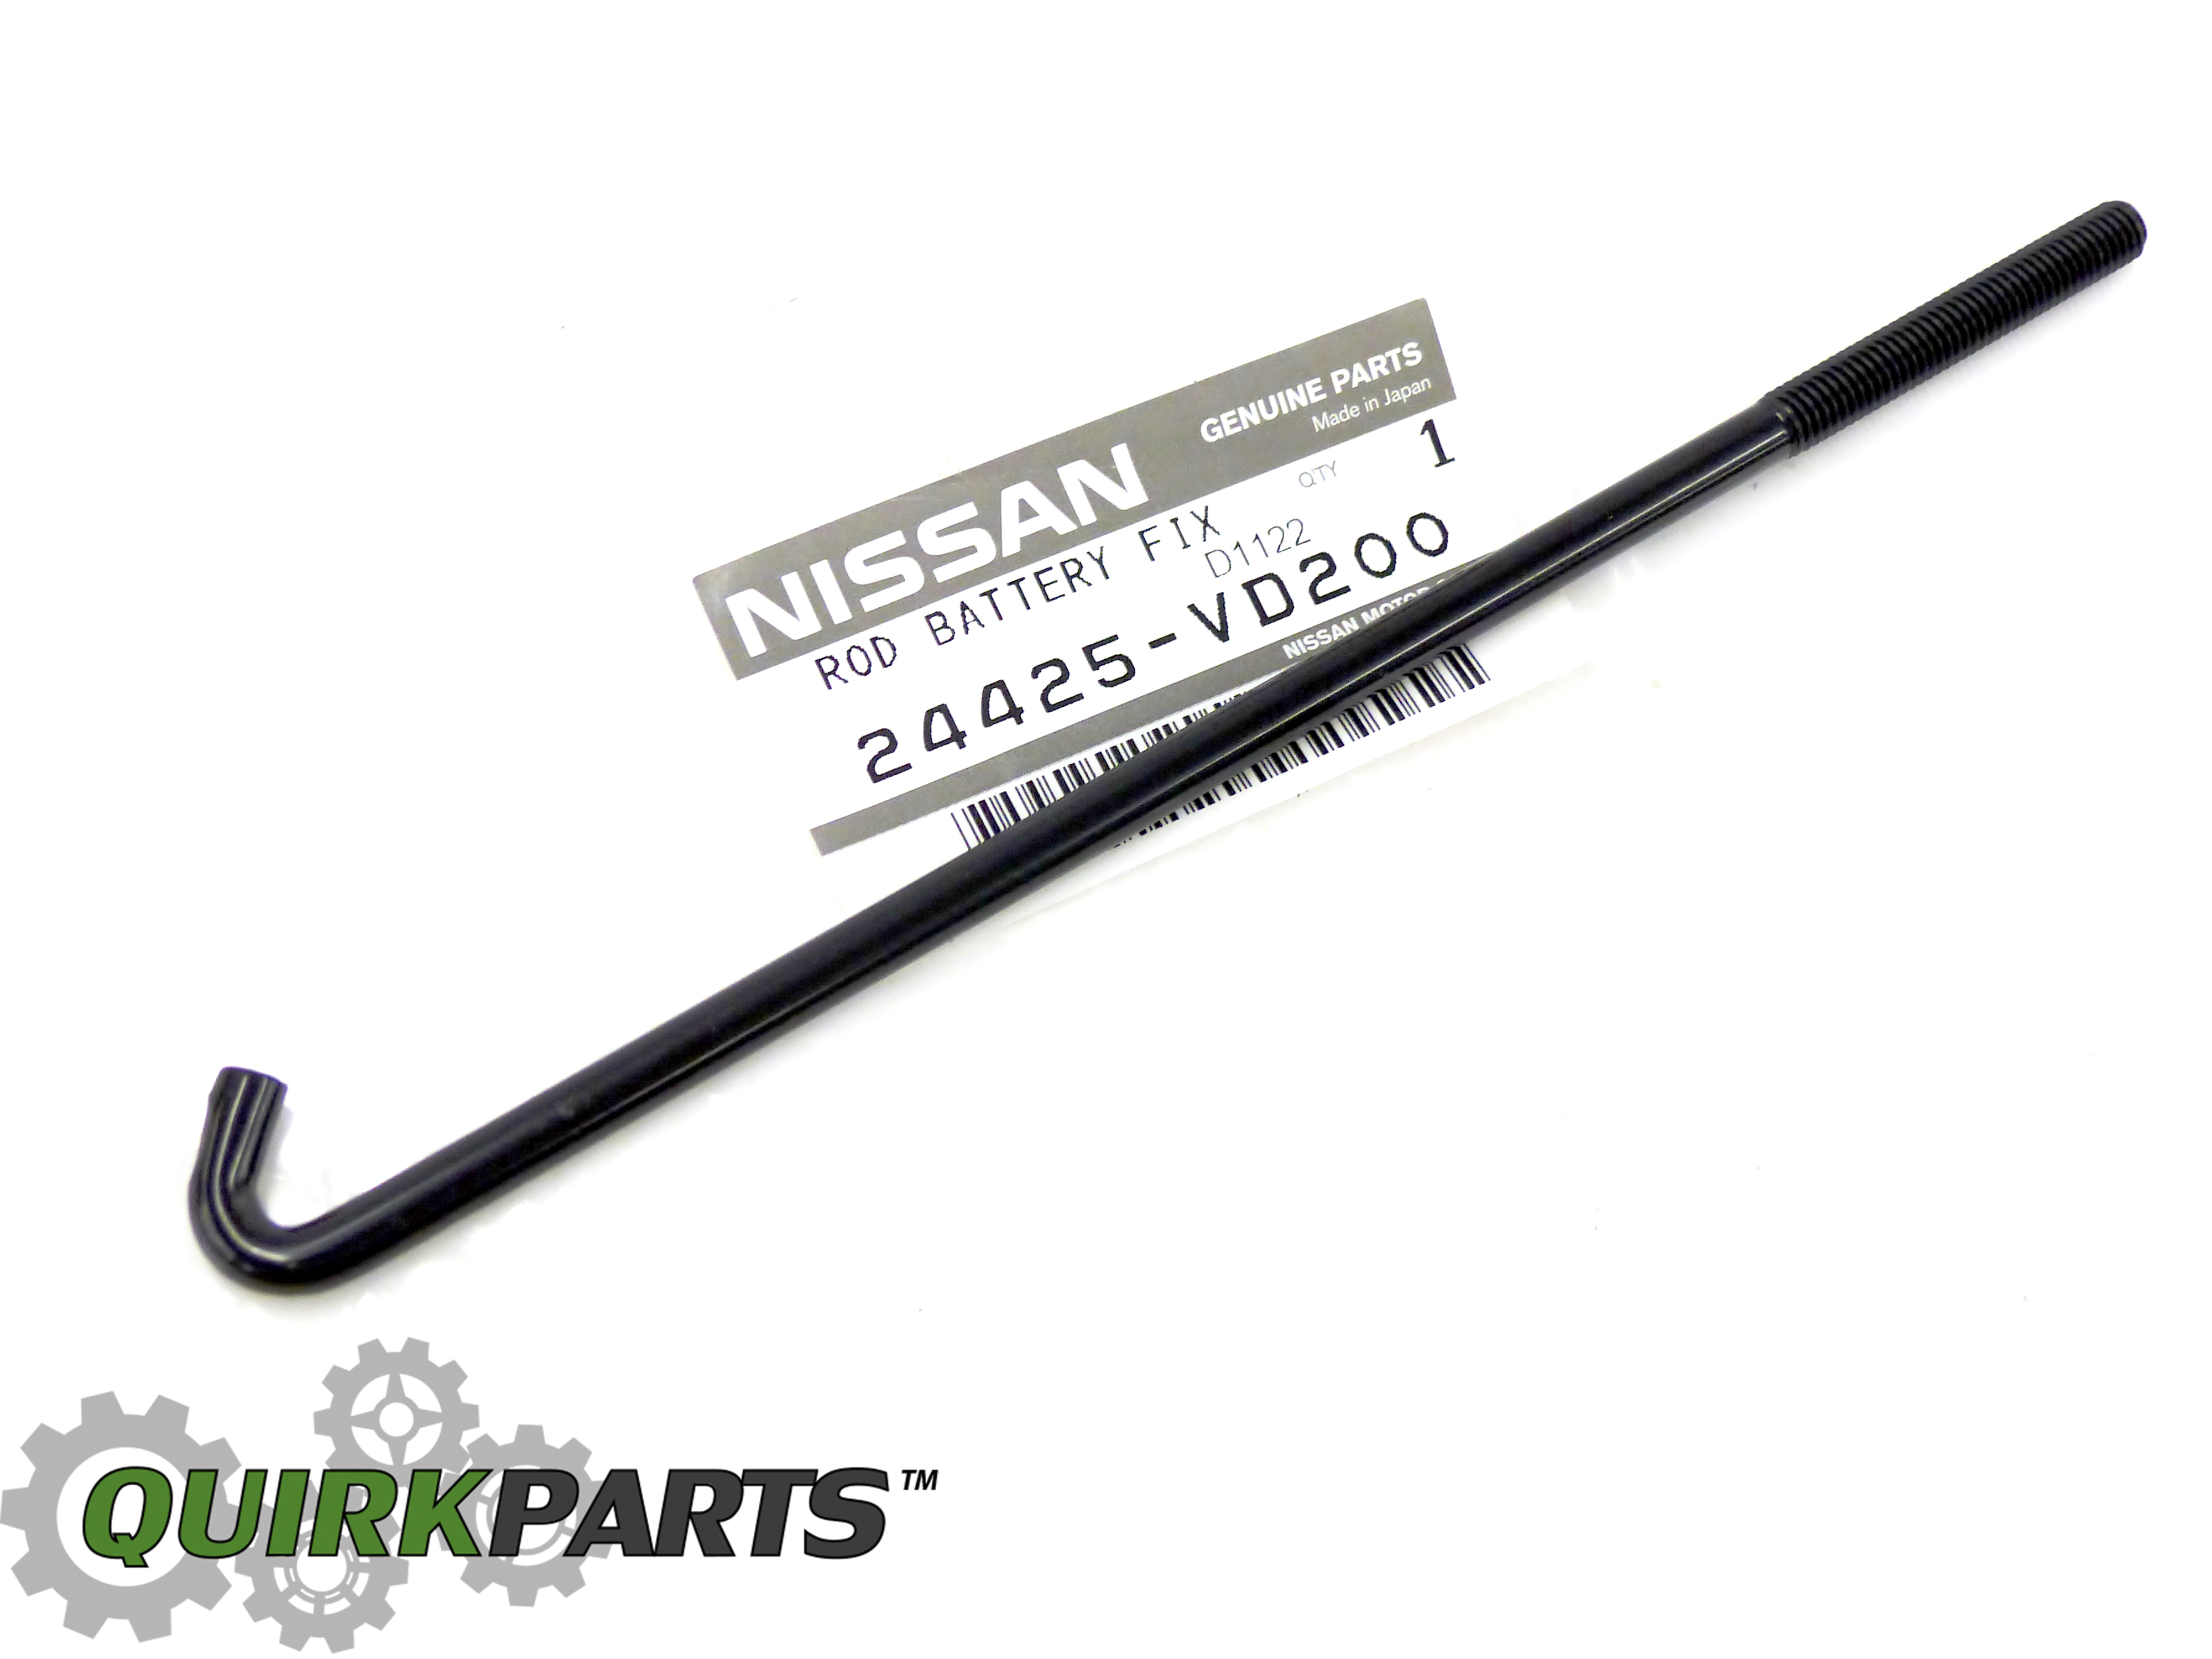 P 0996b43f80376e2f moreover Nissan Sentra 1999 Nissan Sentra Fuse Cover For Interior Fuse Panel moreover 42lhj 1996 Nissan Maxima No Spark Changed moreover Discussion T33866 ds583725 together with P 0996b43f8037fb2e. on 2001 nissan altima battery